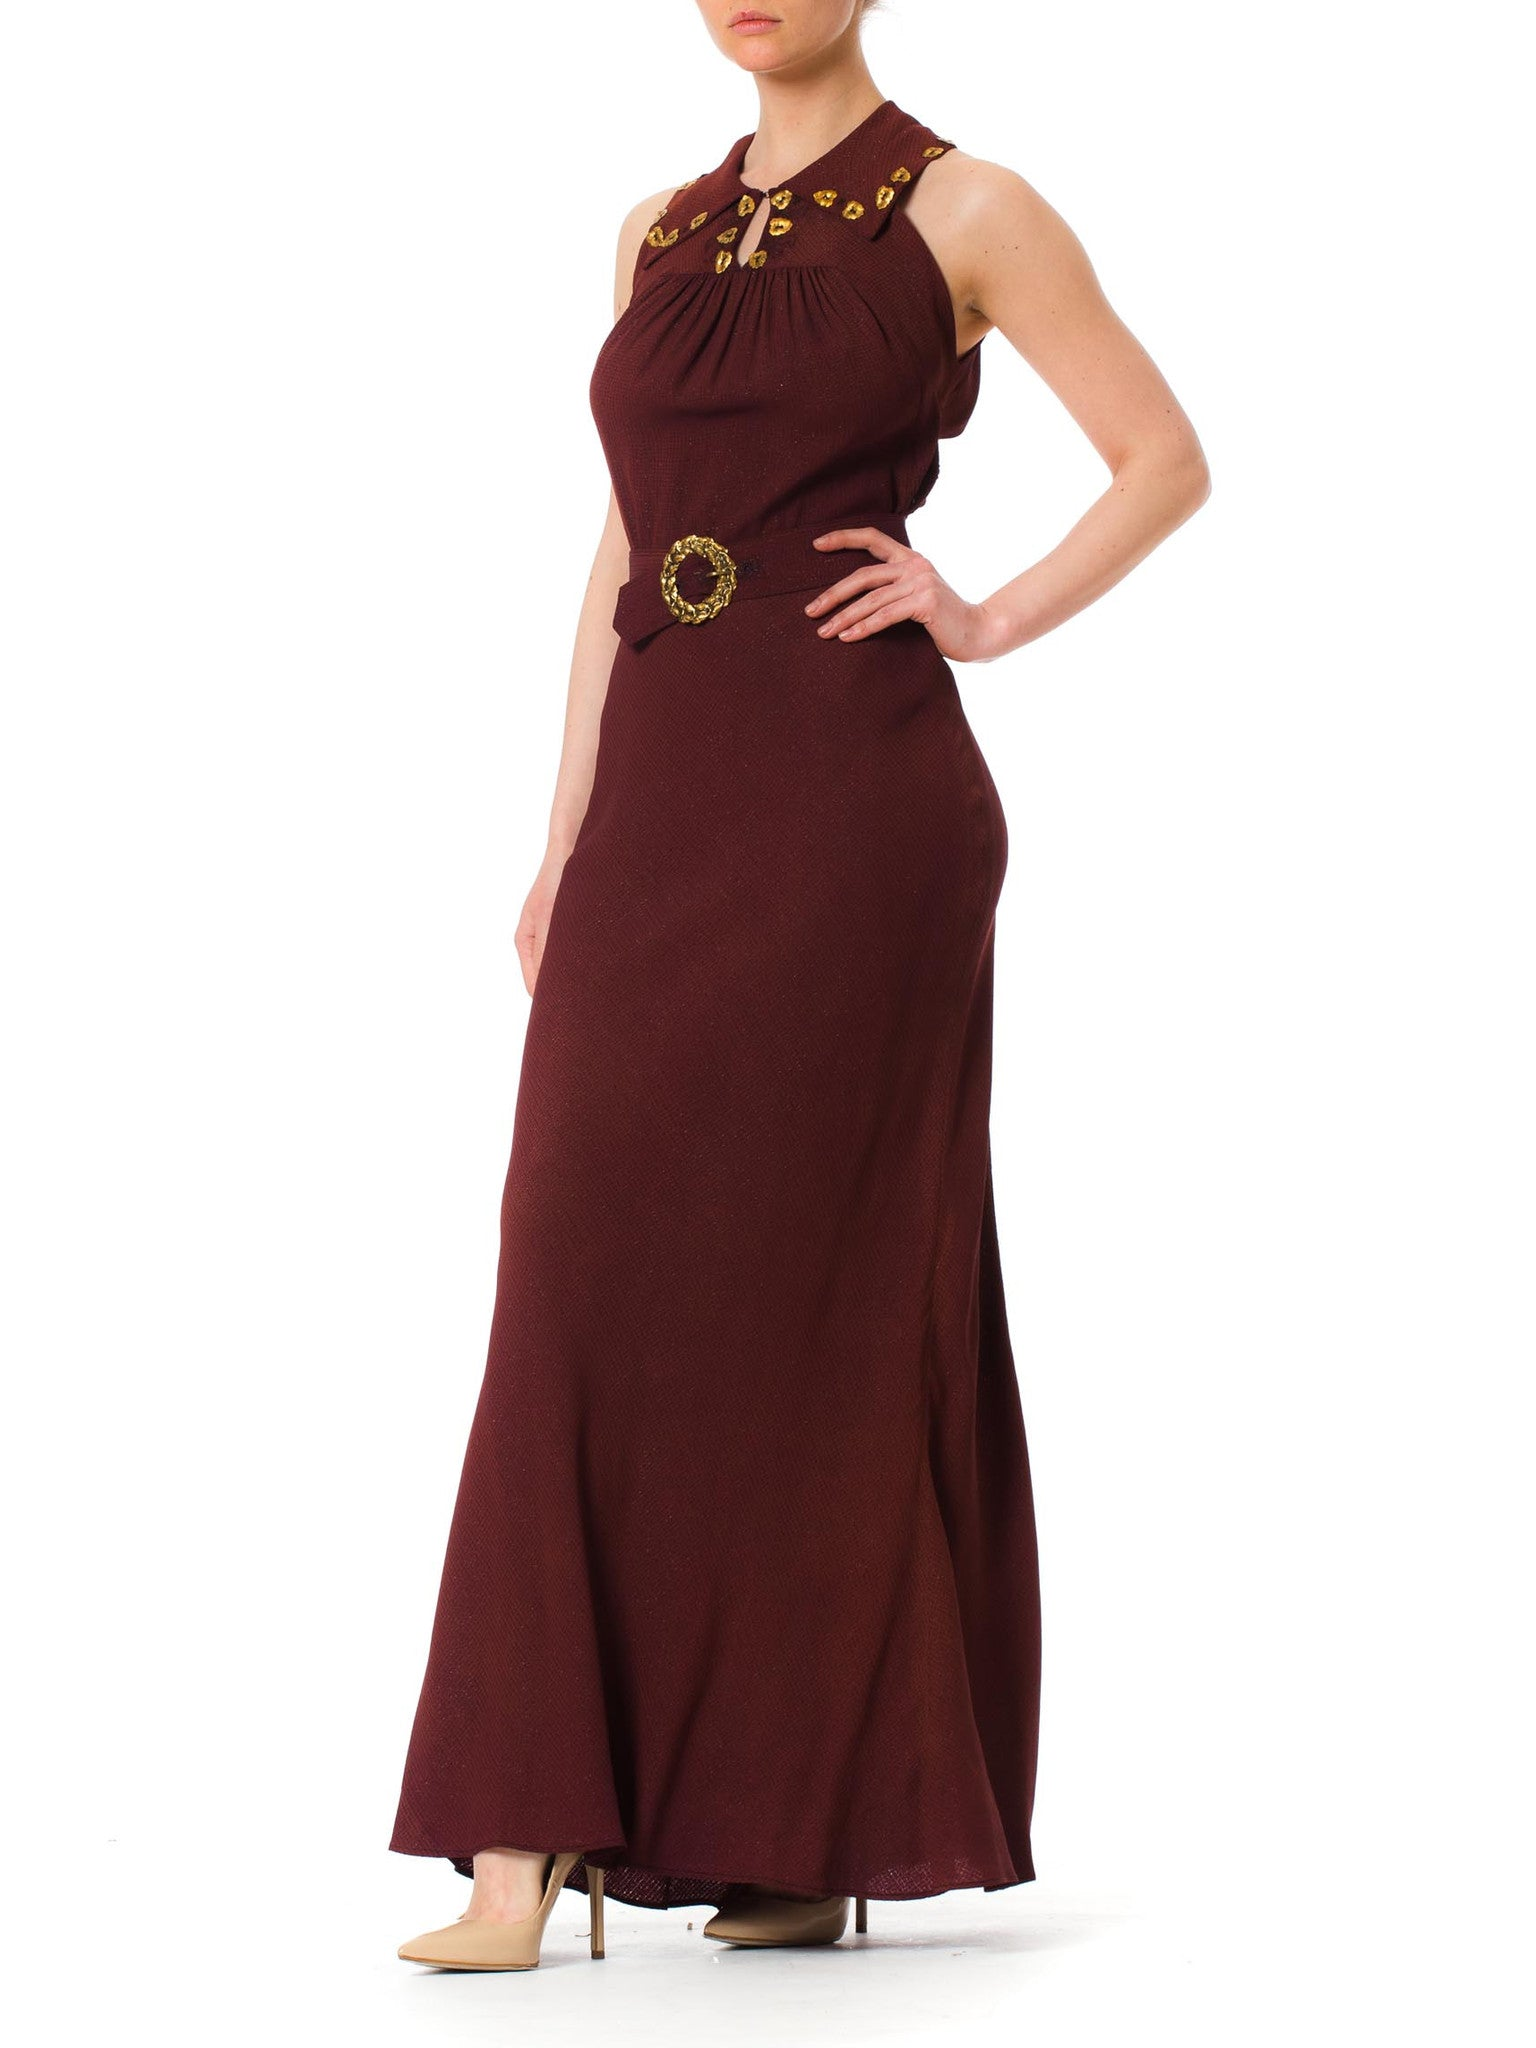 1930S Russet Brown Bias Cut Rayon & Lurex Crepe Gown With Schiaparelli Style Brass Leaves Belt